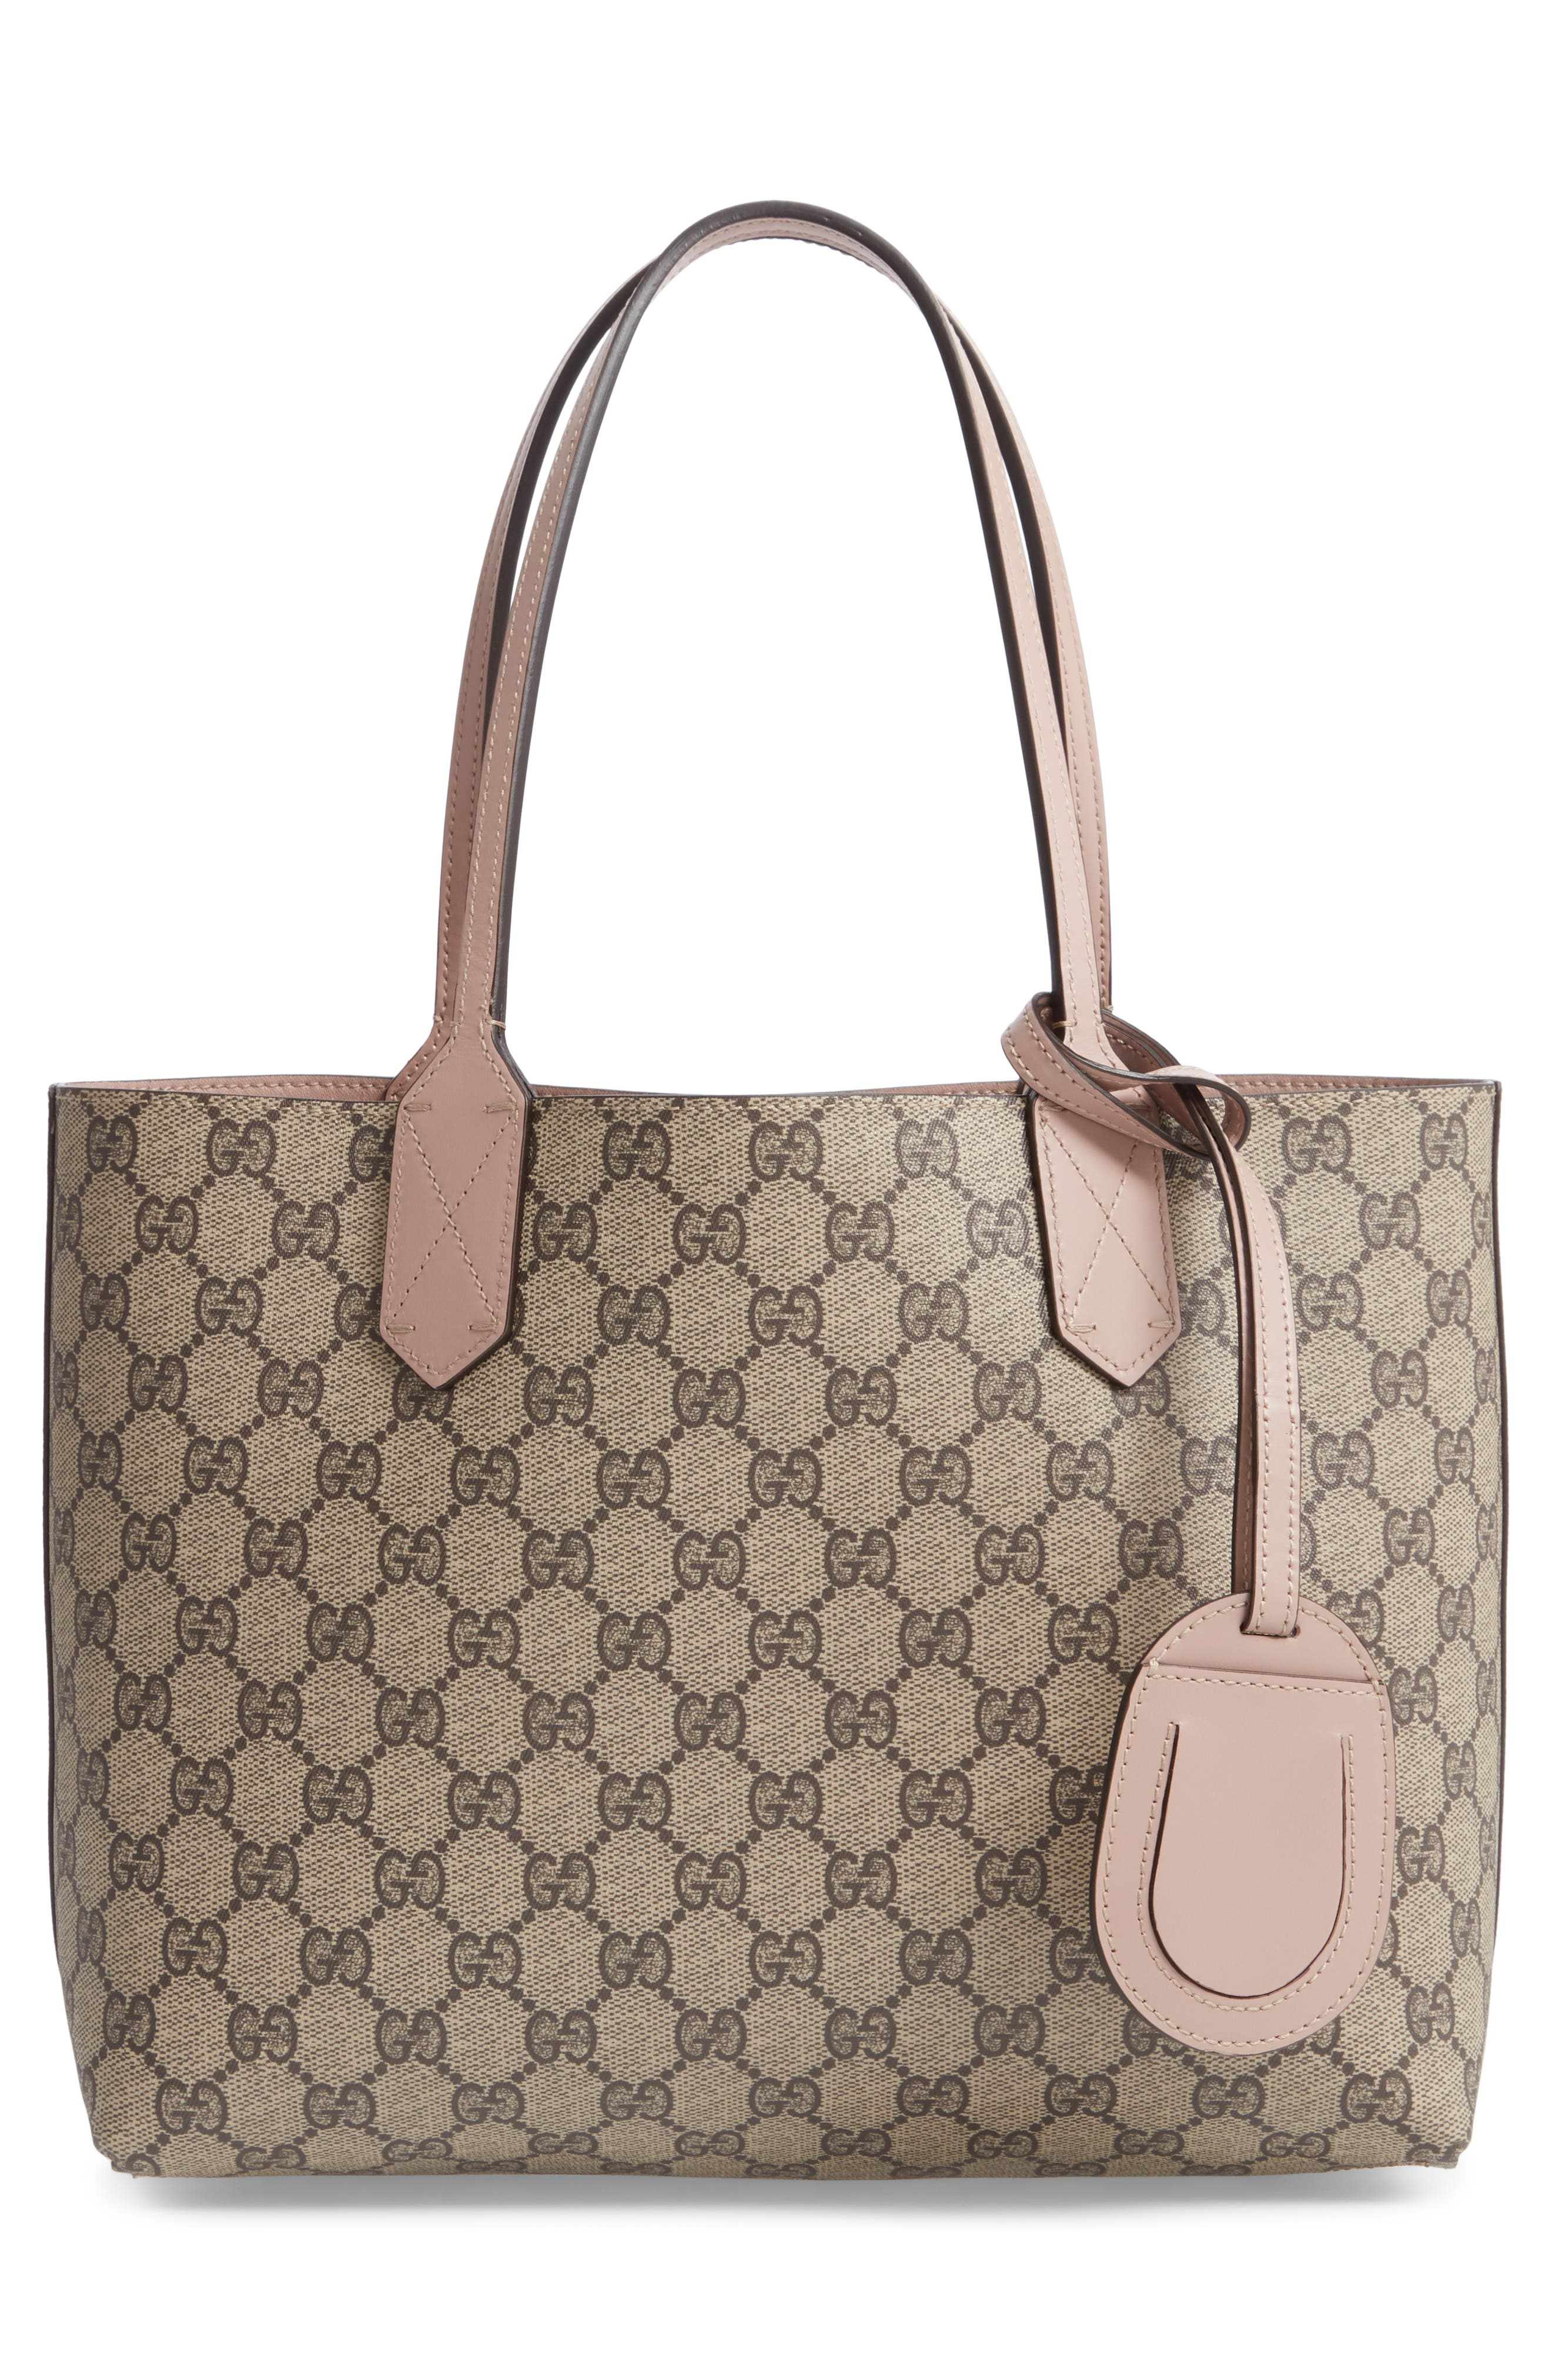 GUCCI,                             Small Turnaround Reversible Leather Tote,                             Alternate thumbnail 3, color,                             671